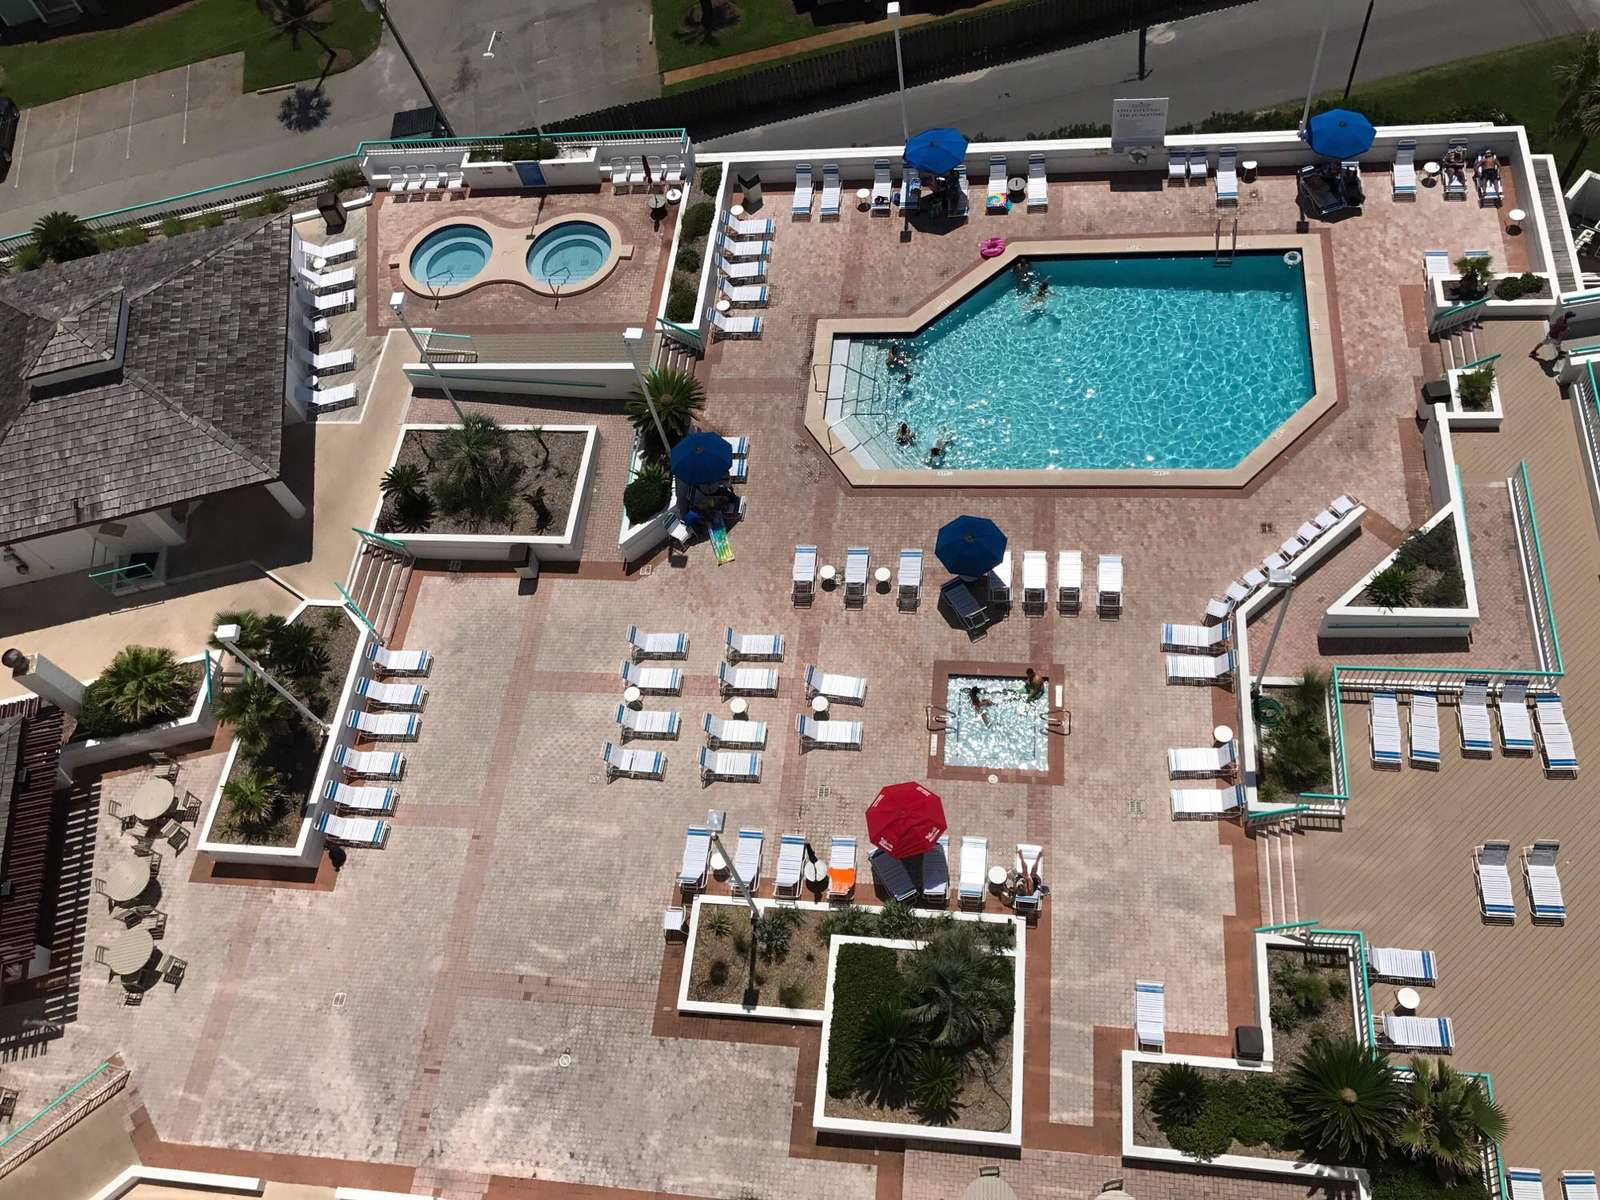 Ariel view of the pool deck.